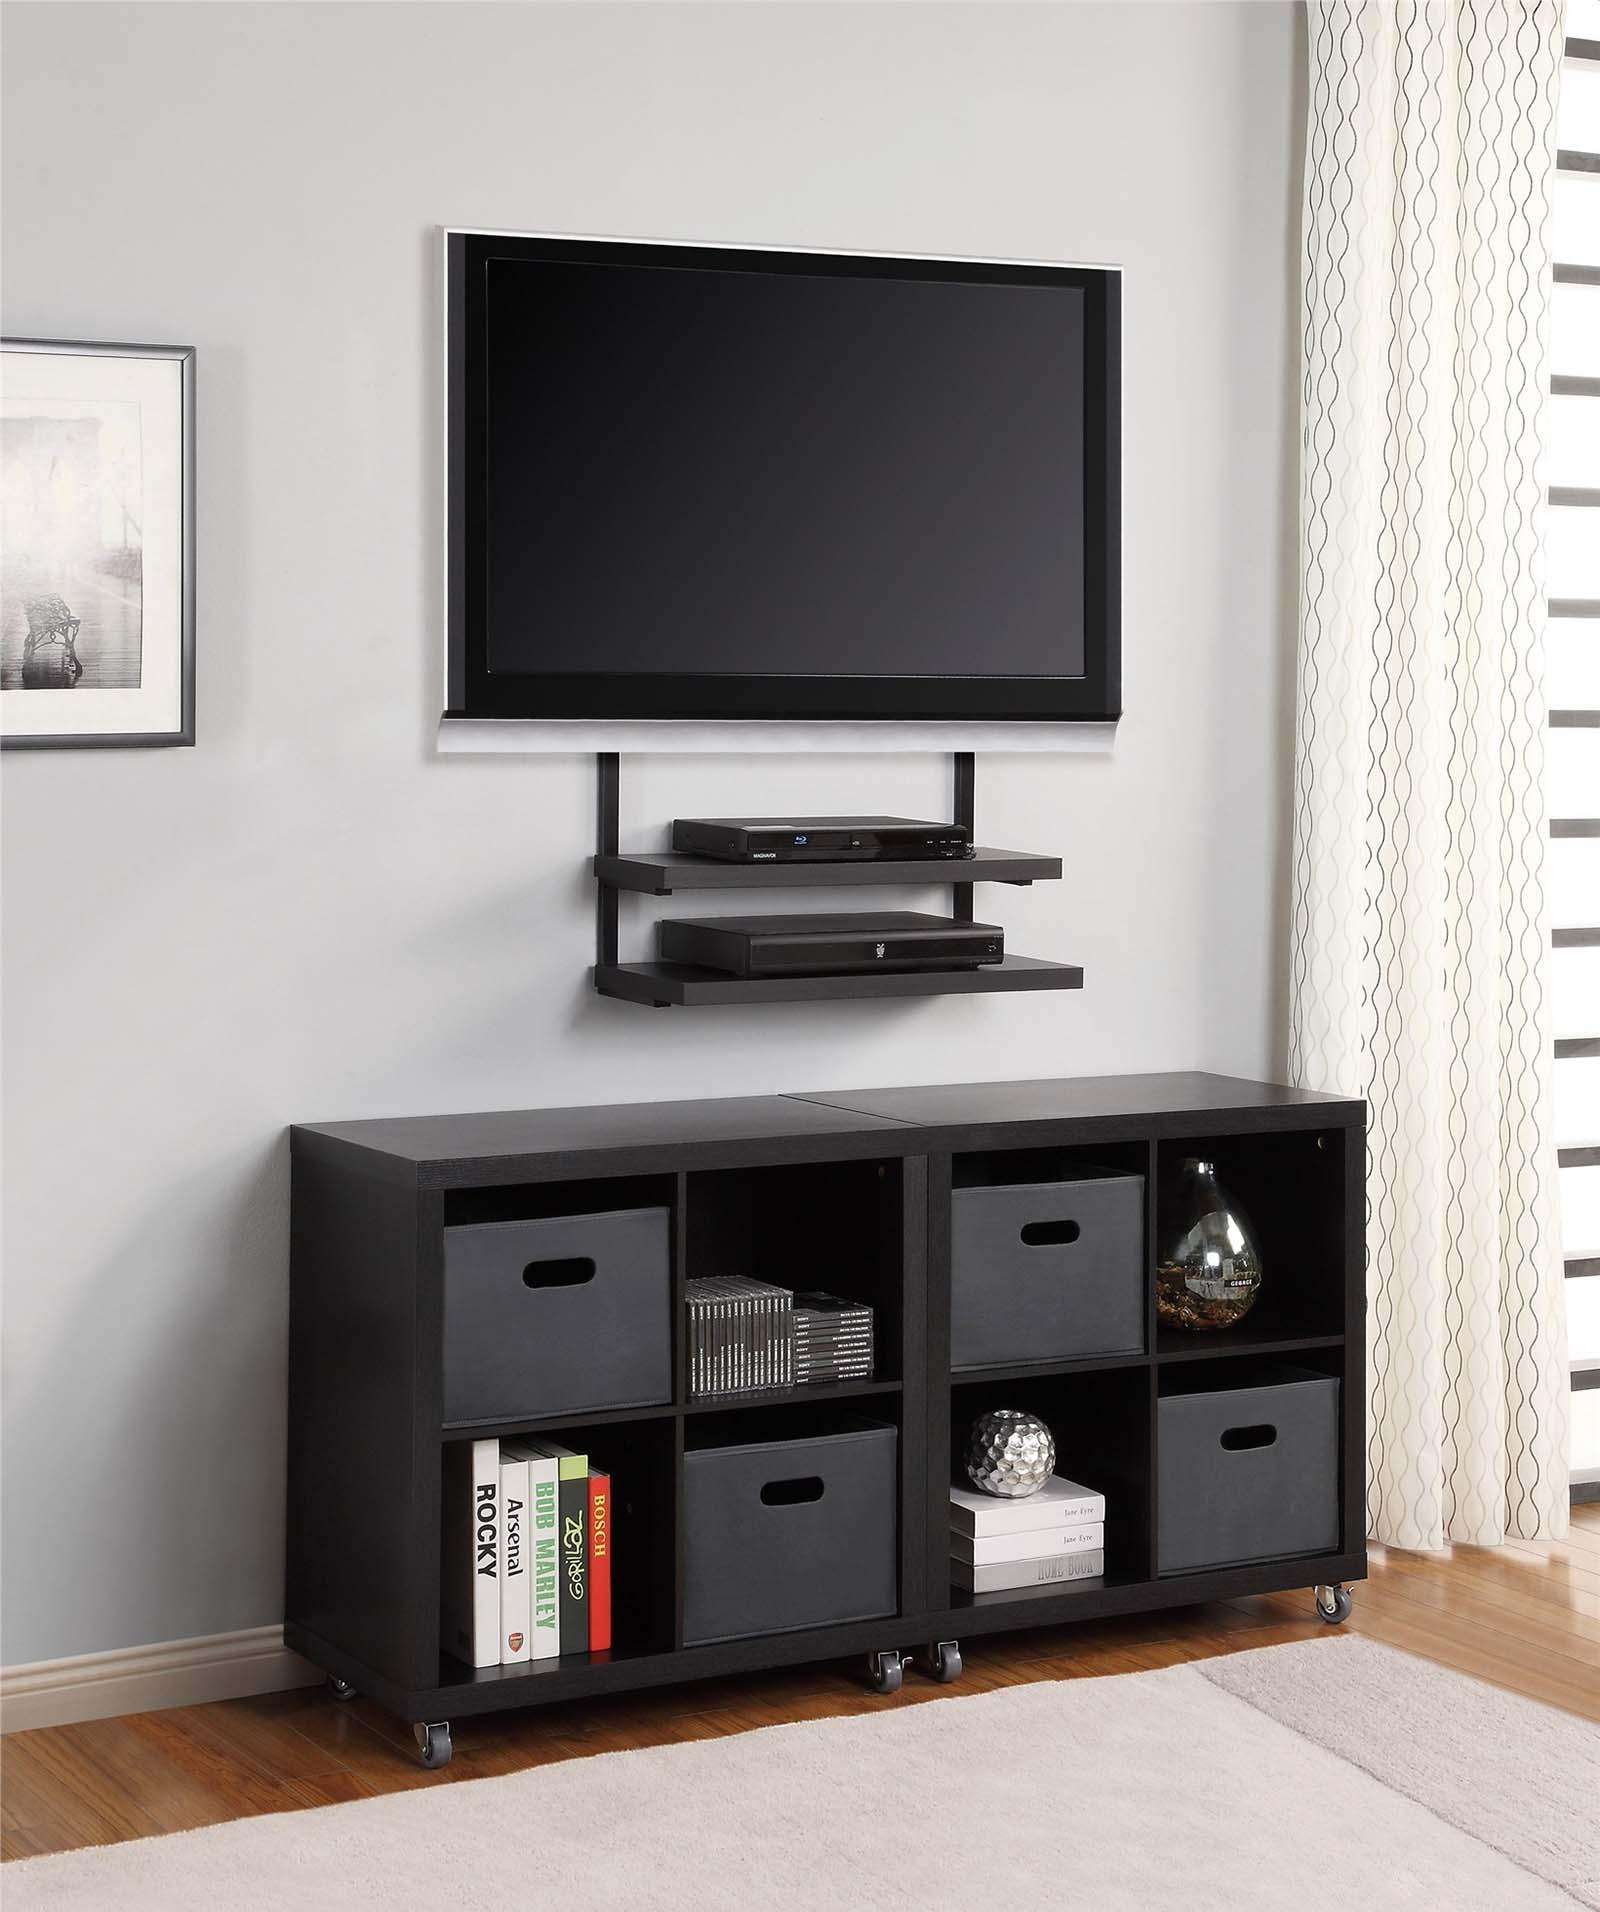 Wall-Mounted TV with Black Racks